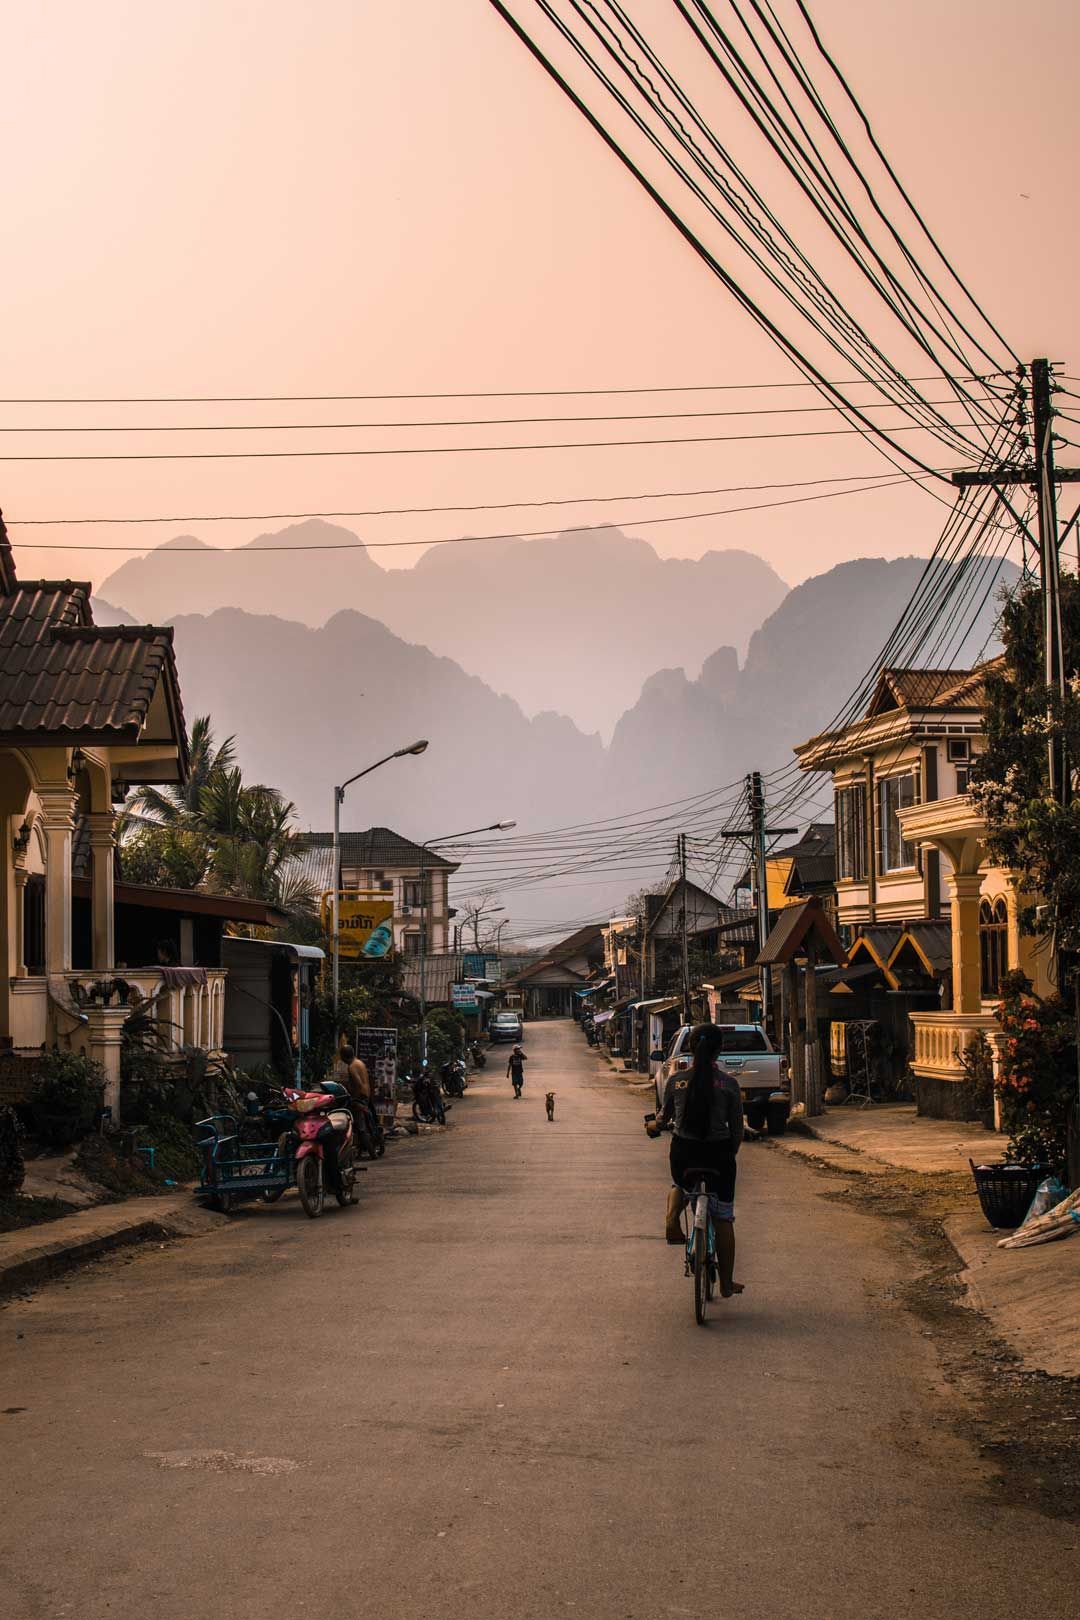 15 Awesome Things to Do in Luang Prabang, Laos (2019 Edition)